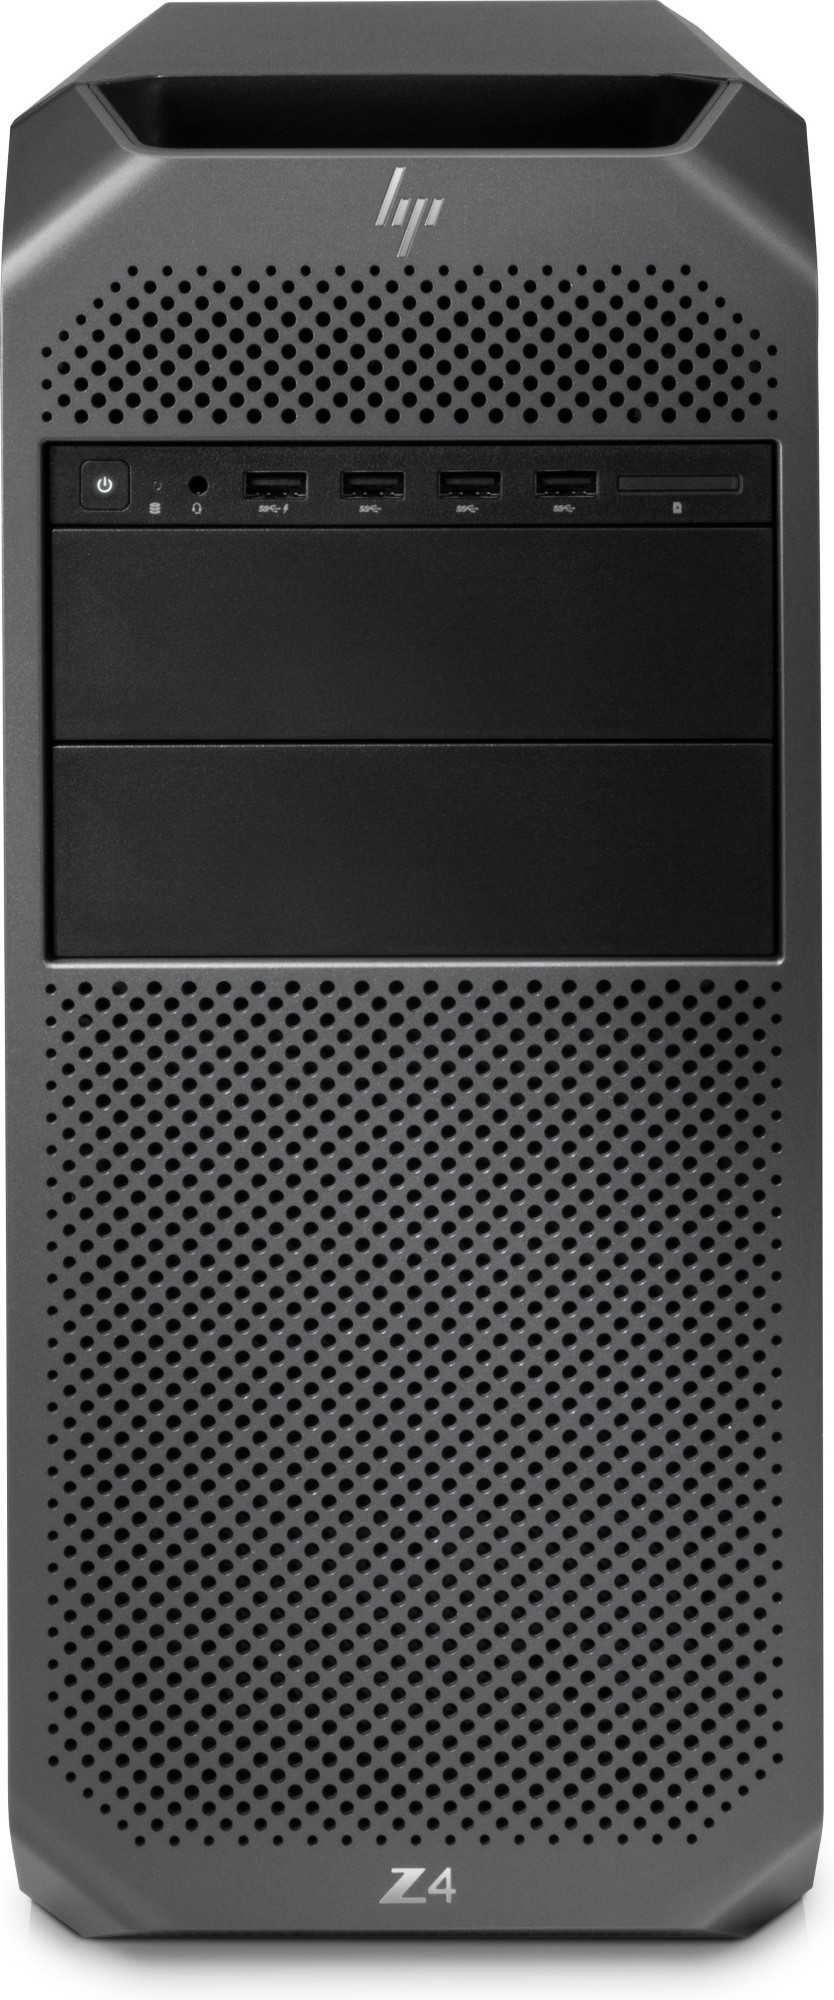 HP Z4 G4 9th gen Intel Core i9 i9-9820X 16 GB DDR4-SDRAM 512 GB SSD Black Mini Tower Workstation